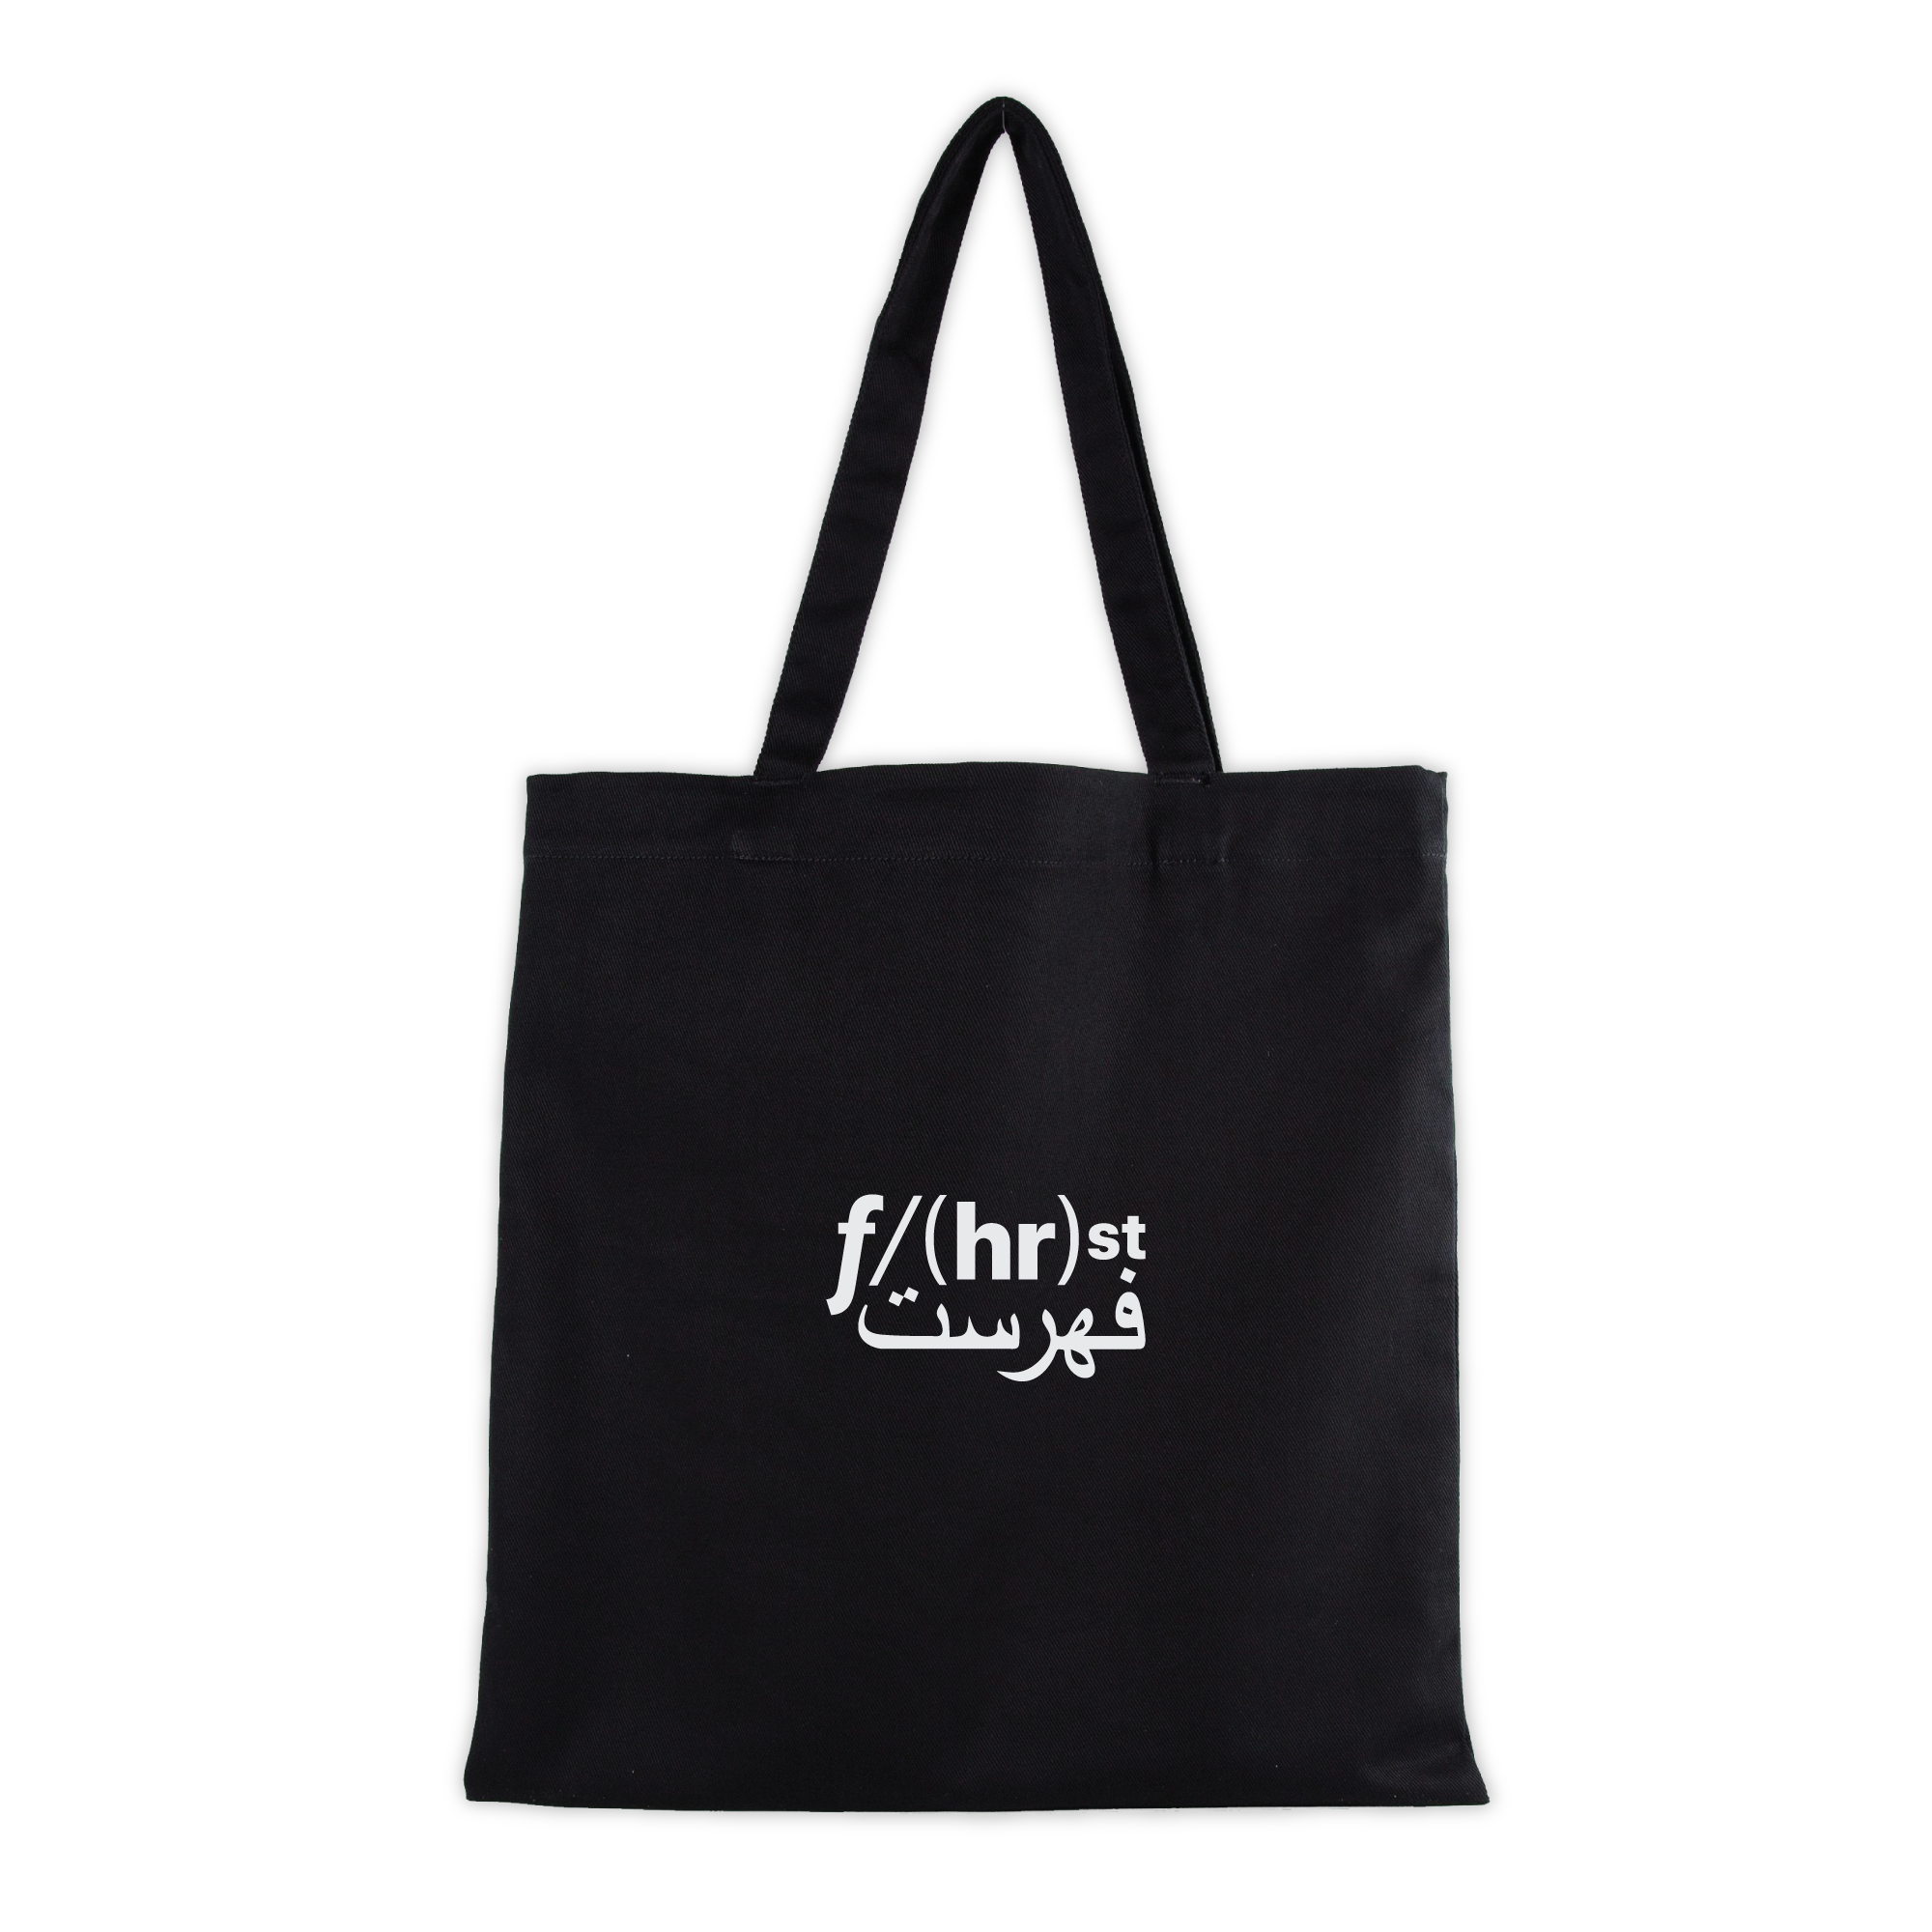 FHRST-B-Tote-Bag.png